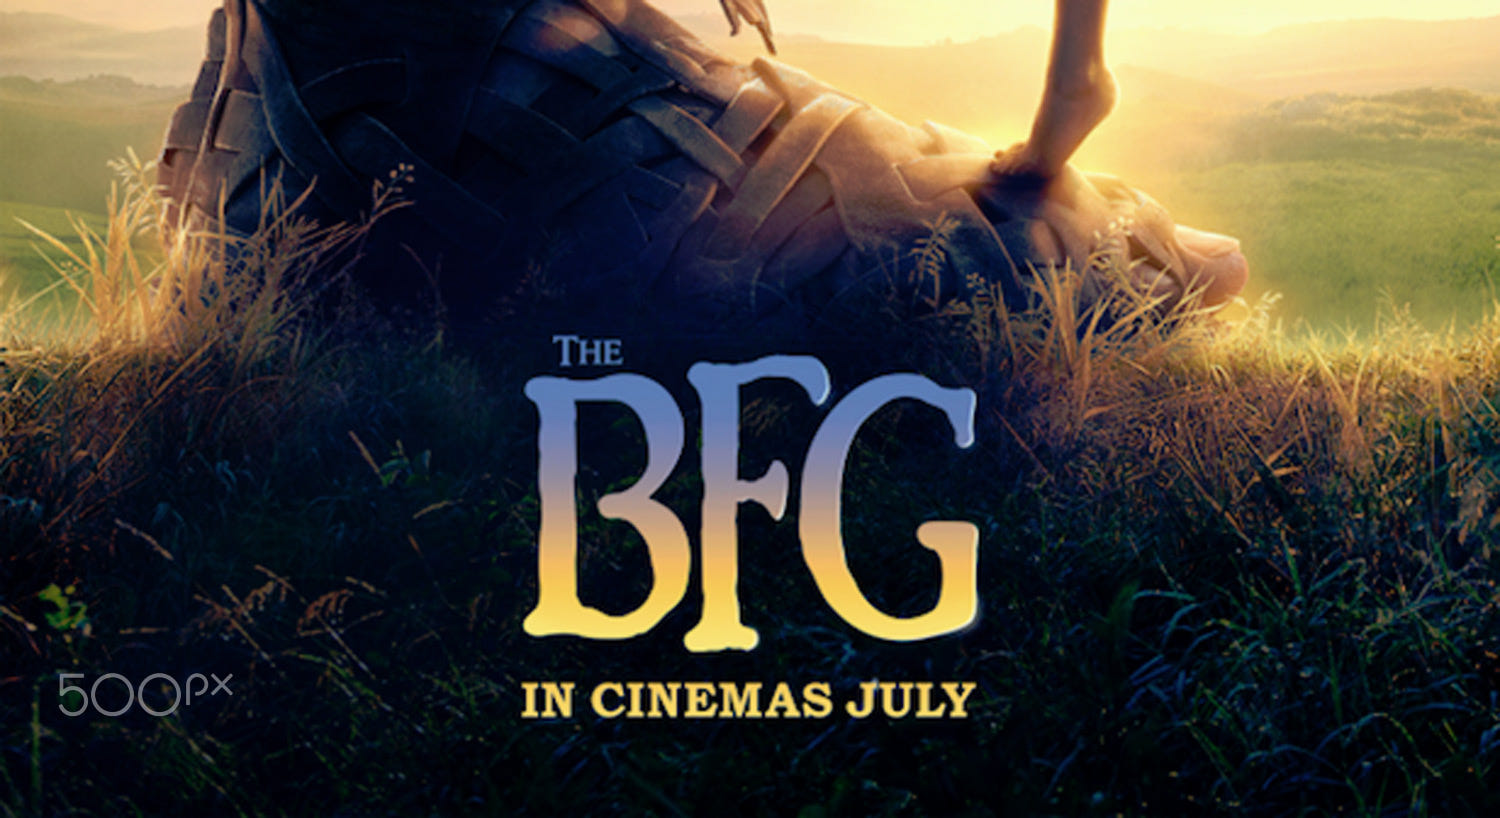 Download The Bfg Movie 2016 Full Movie By Mark Roy Photo 159620365